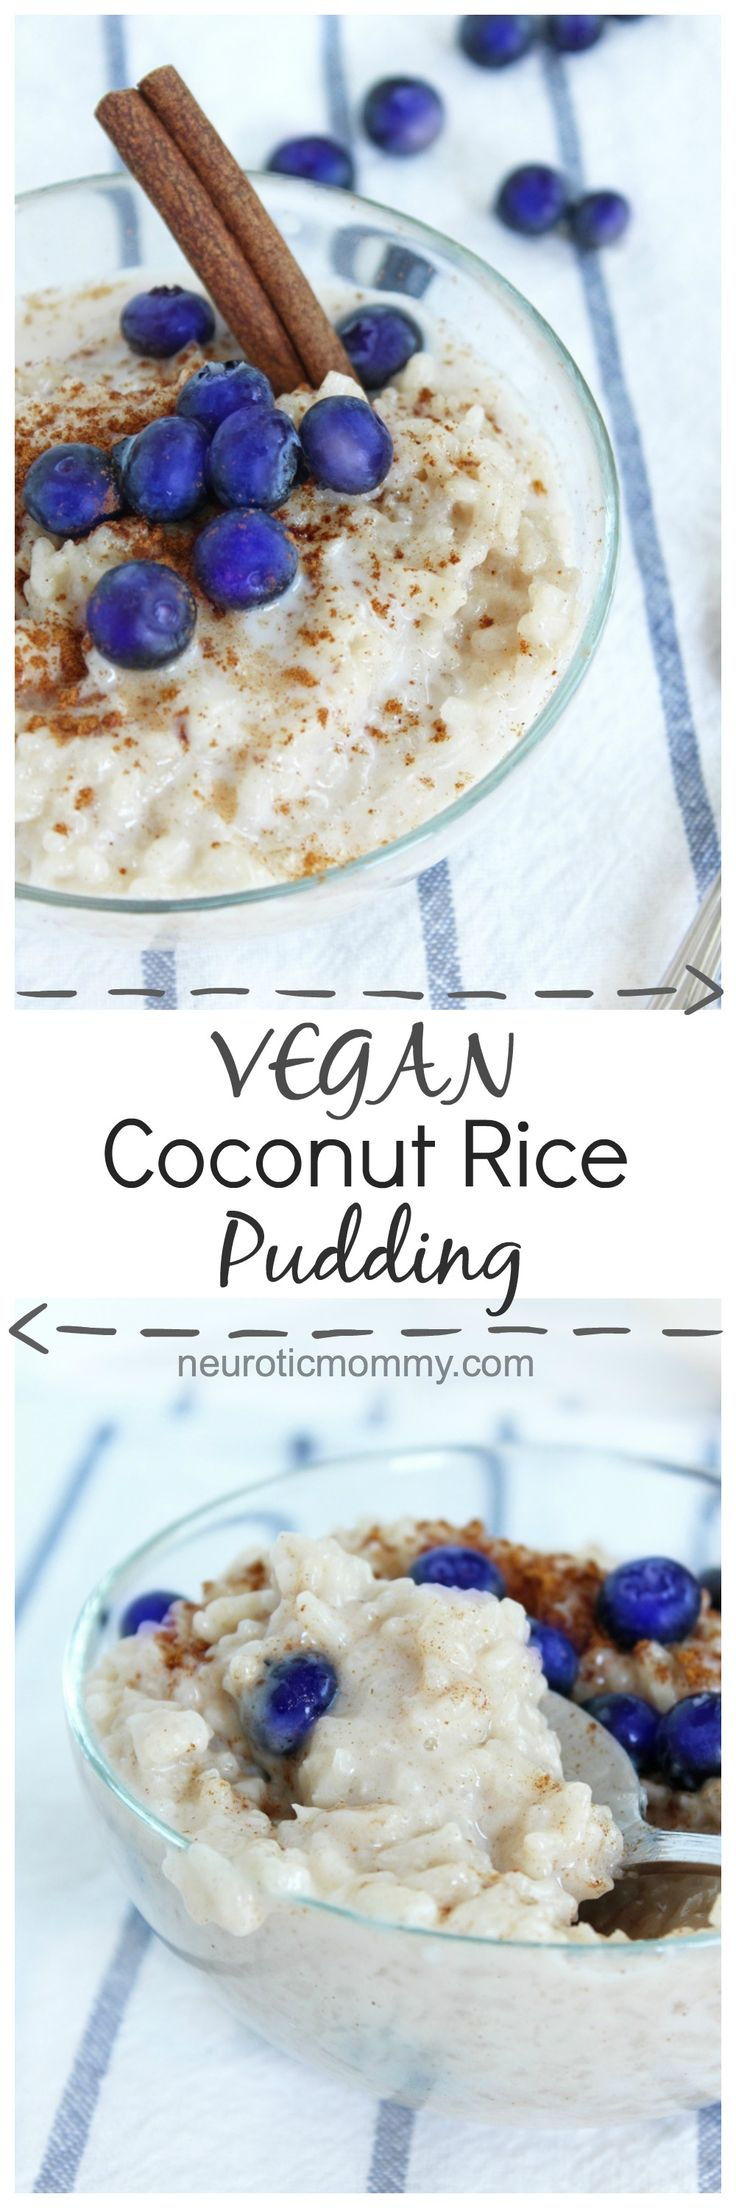 330 best Pudding images on Pinterest | Caramel pudding, Healthy ...